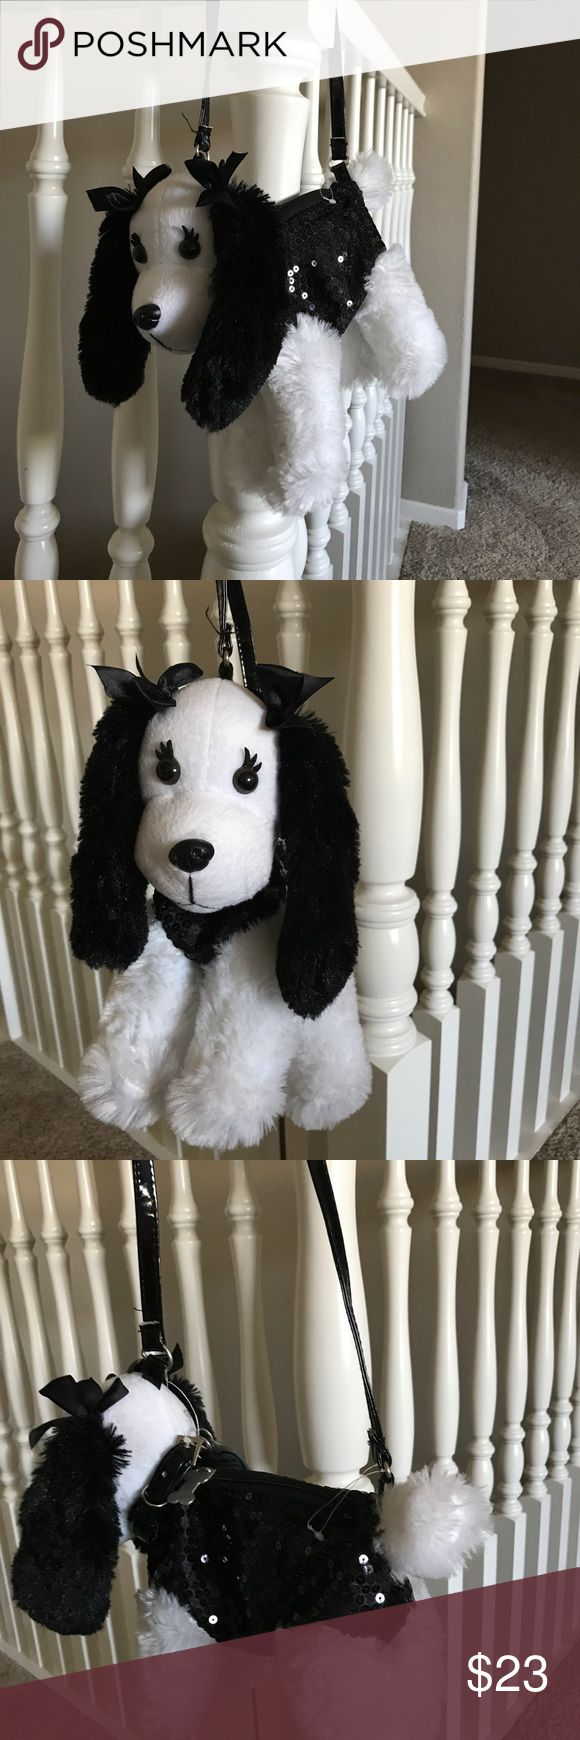 Kids puppy purse Adorable puppy purse black and white with dog tags and a place to write a name brand new Accessories Bags